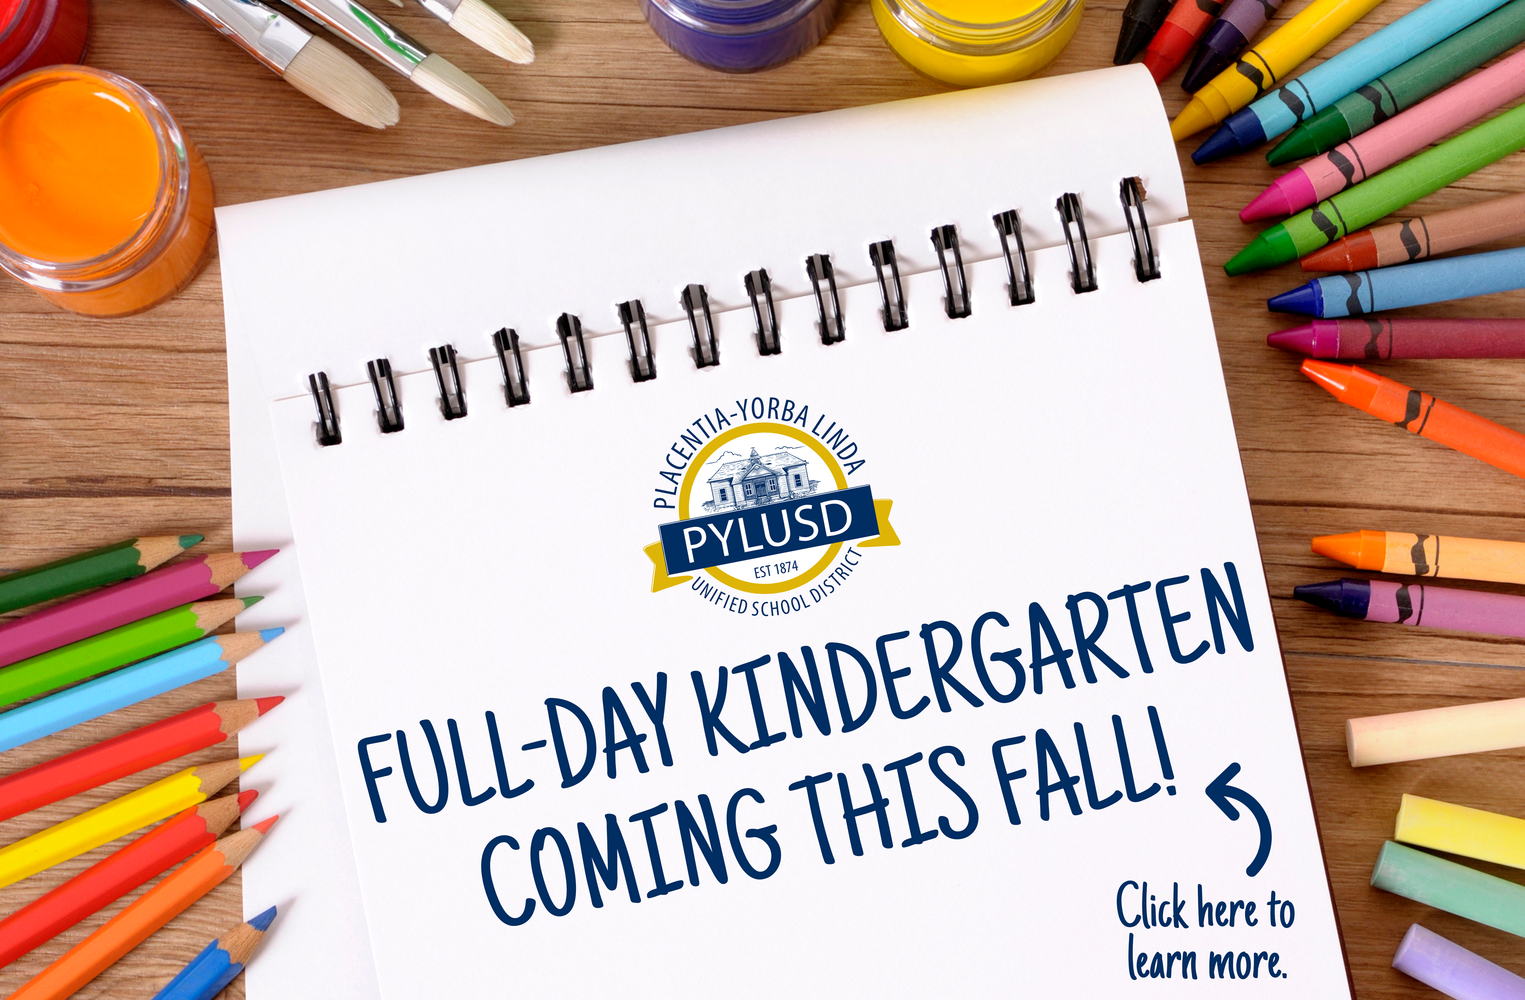 PYLUSD full-day kindergarten graphic.